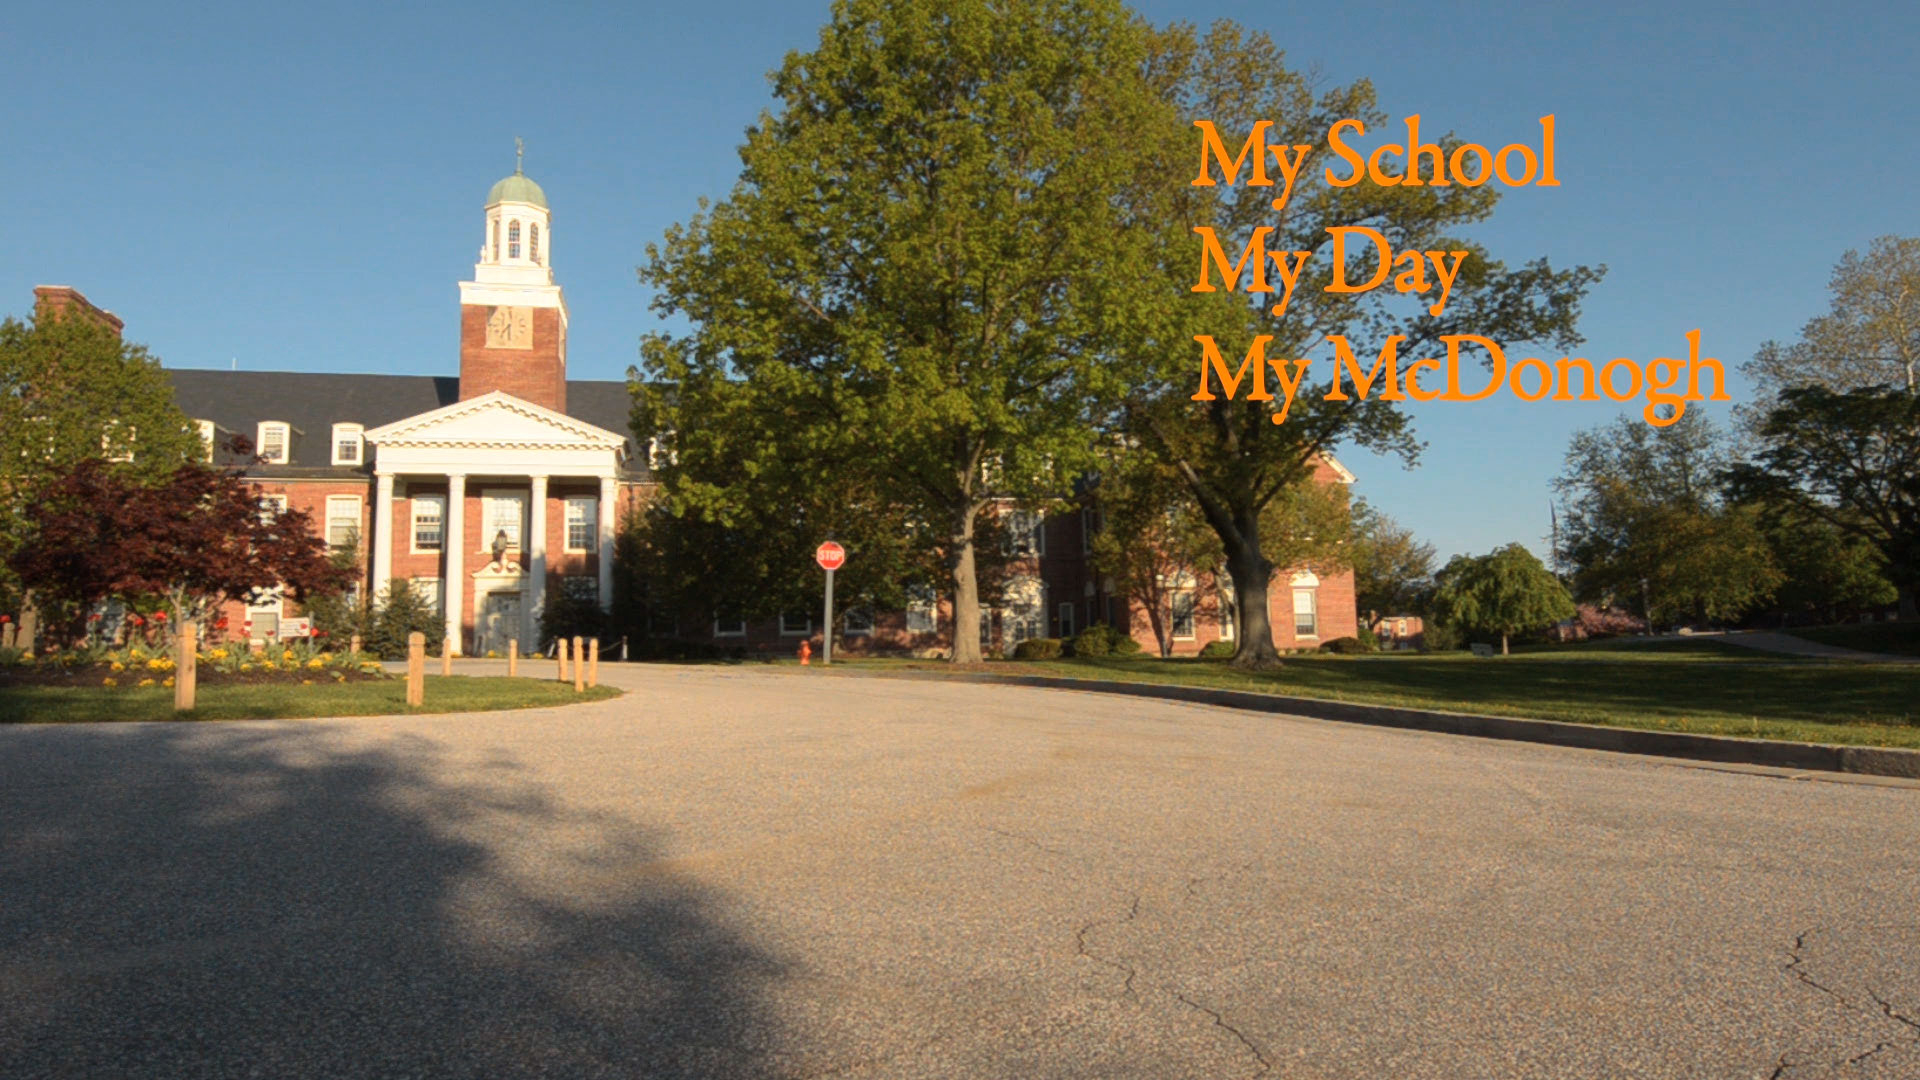 My School, My Day, My McDonogh